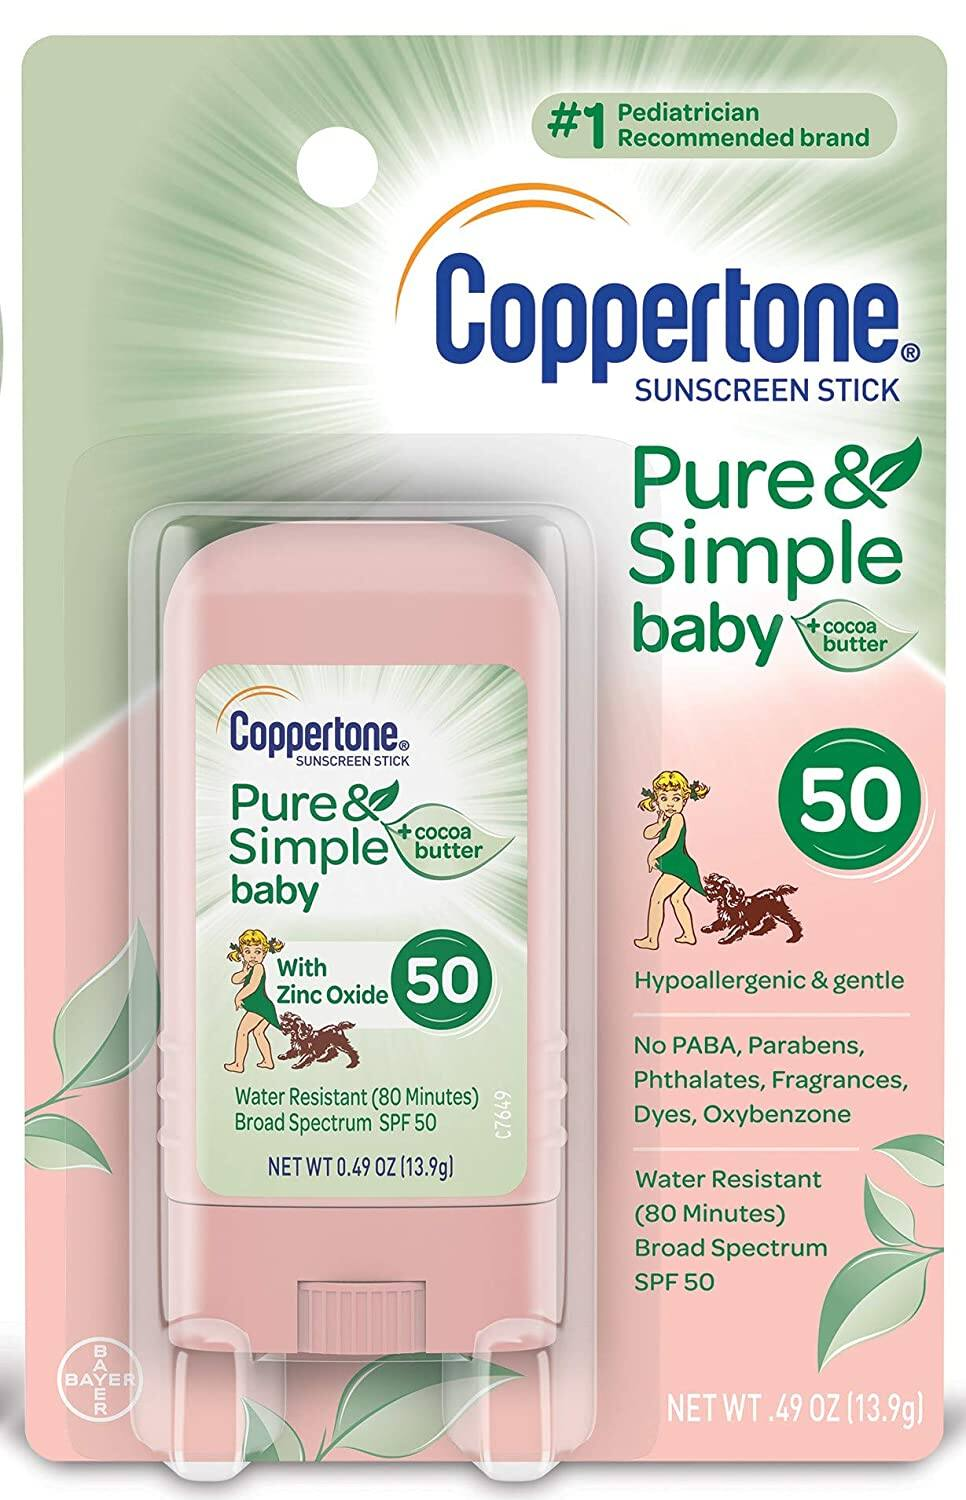 Coppertone Pure & Simple Baby SPF 50 Sunscreen Stick